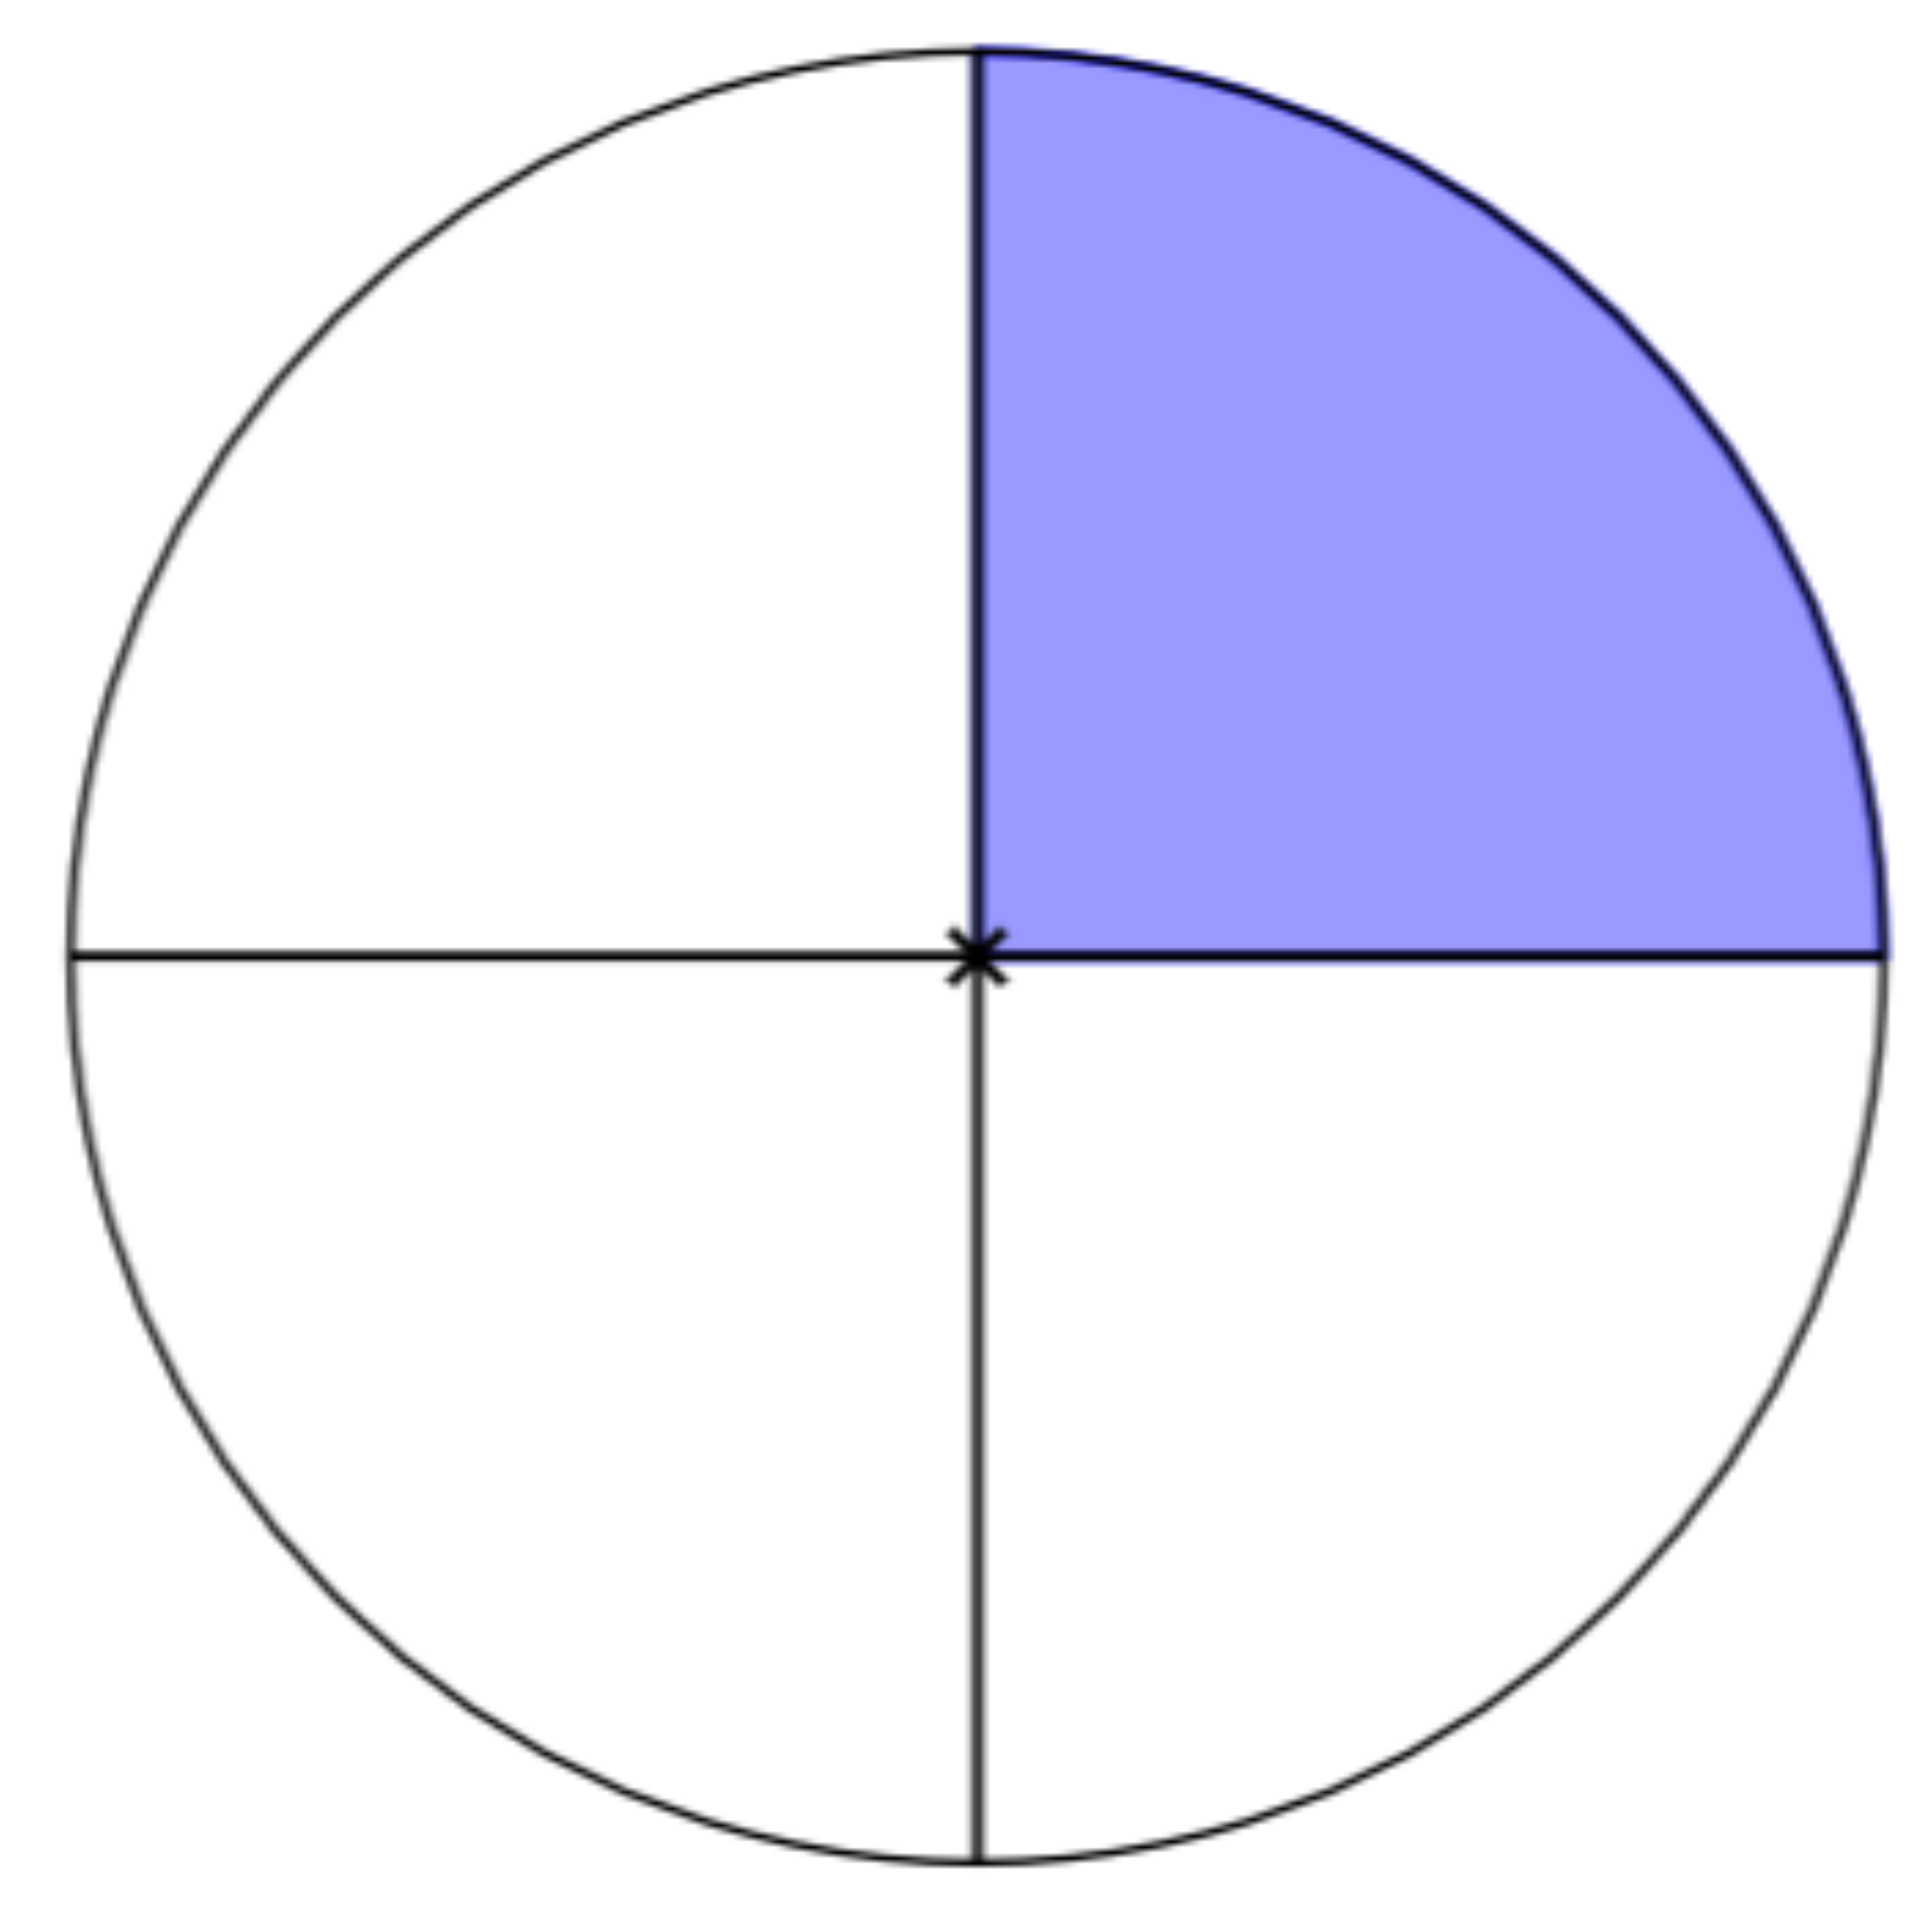 Fraction 14 on Circle Fraction